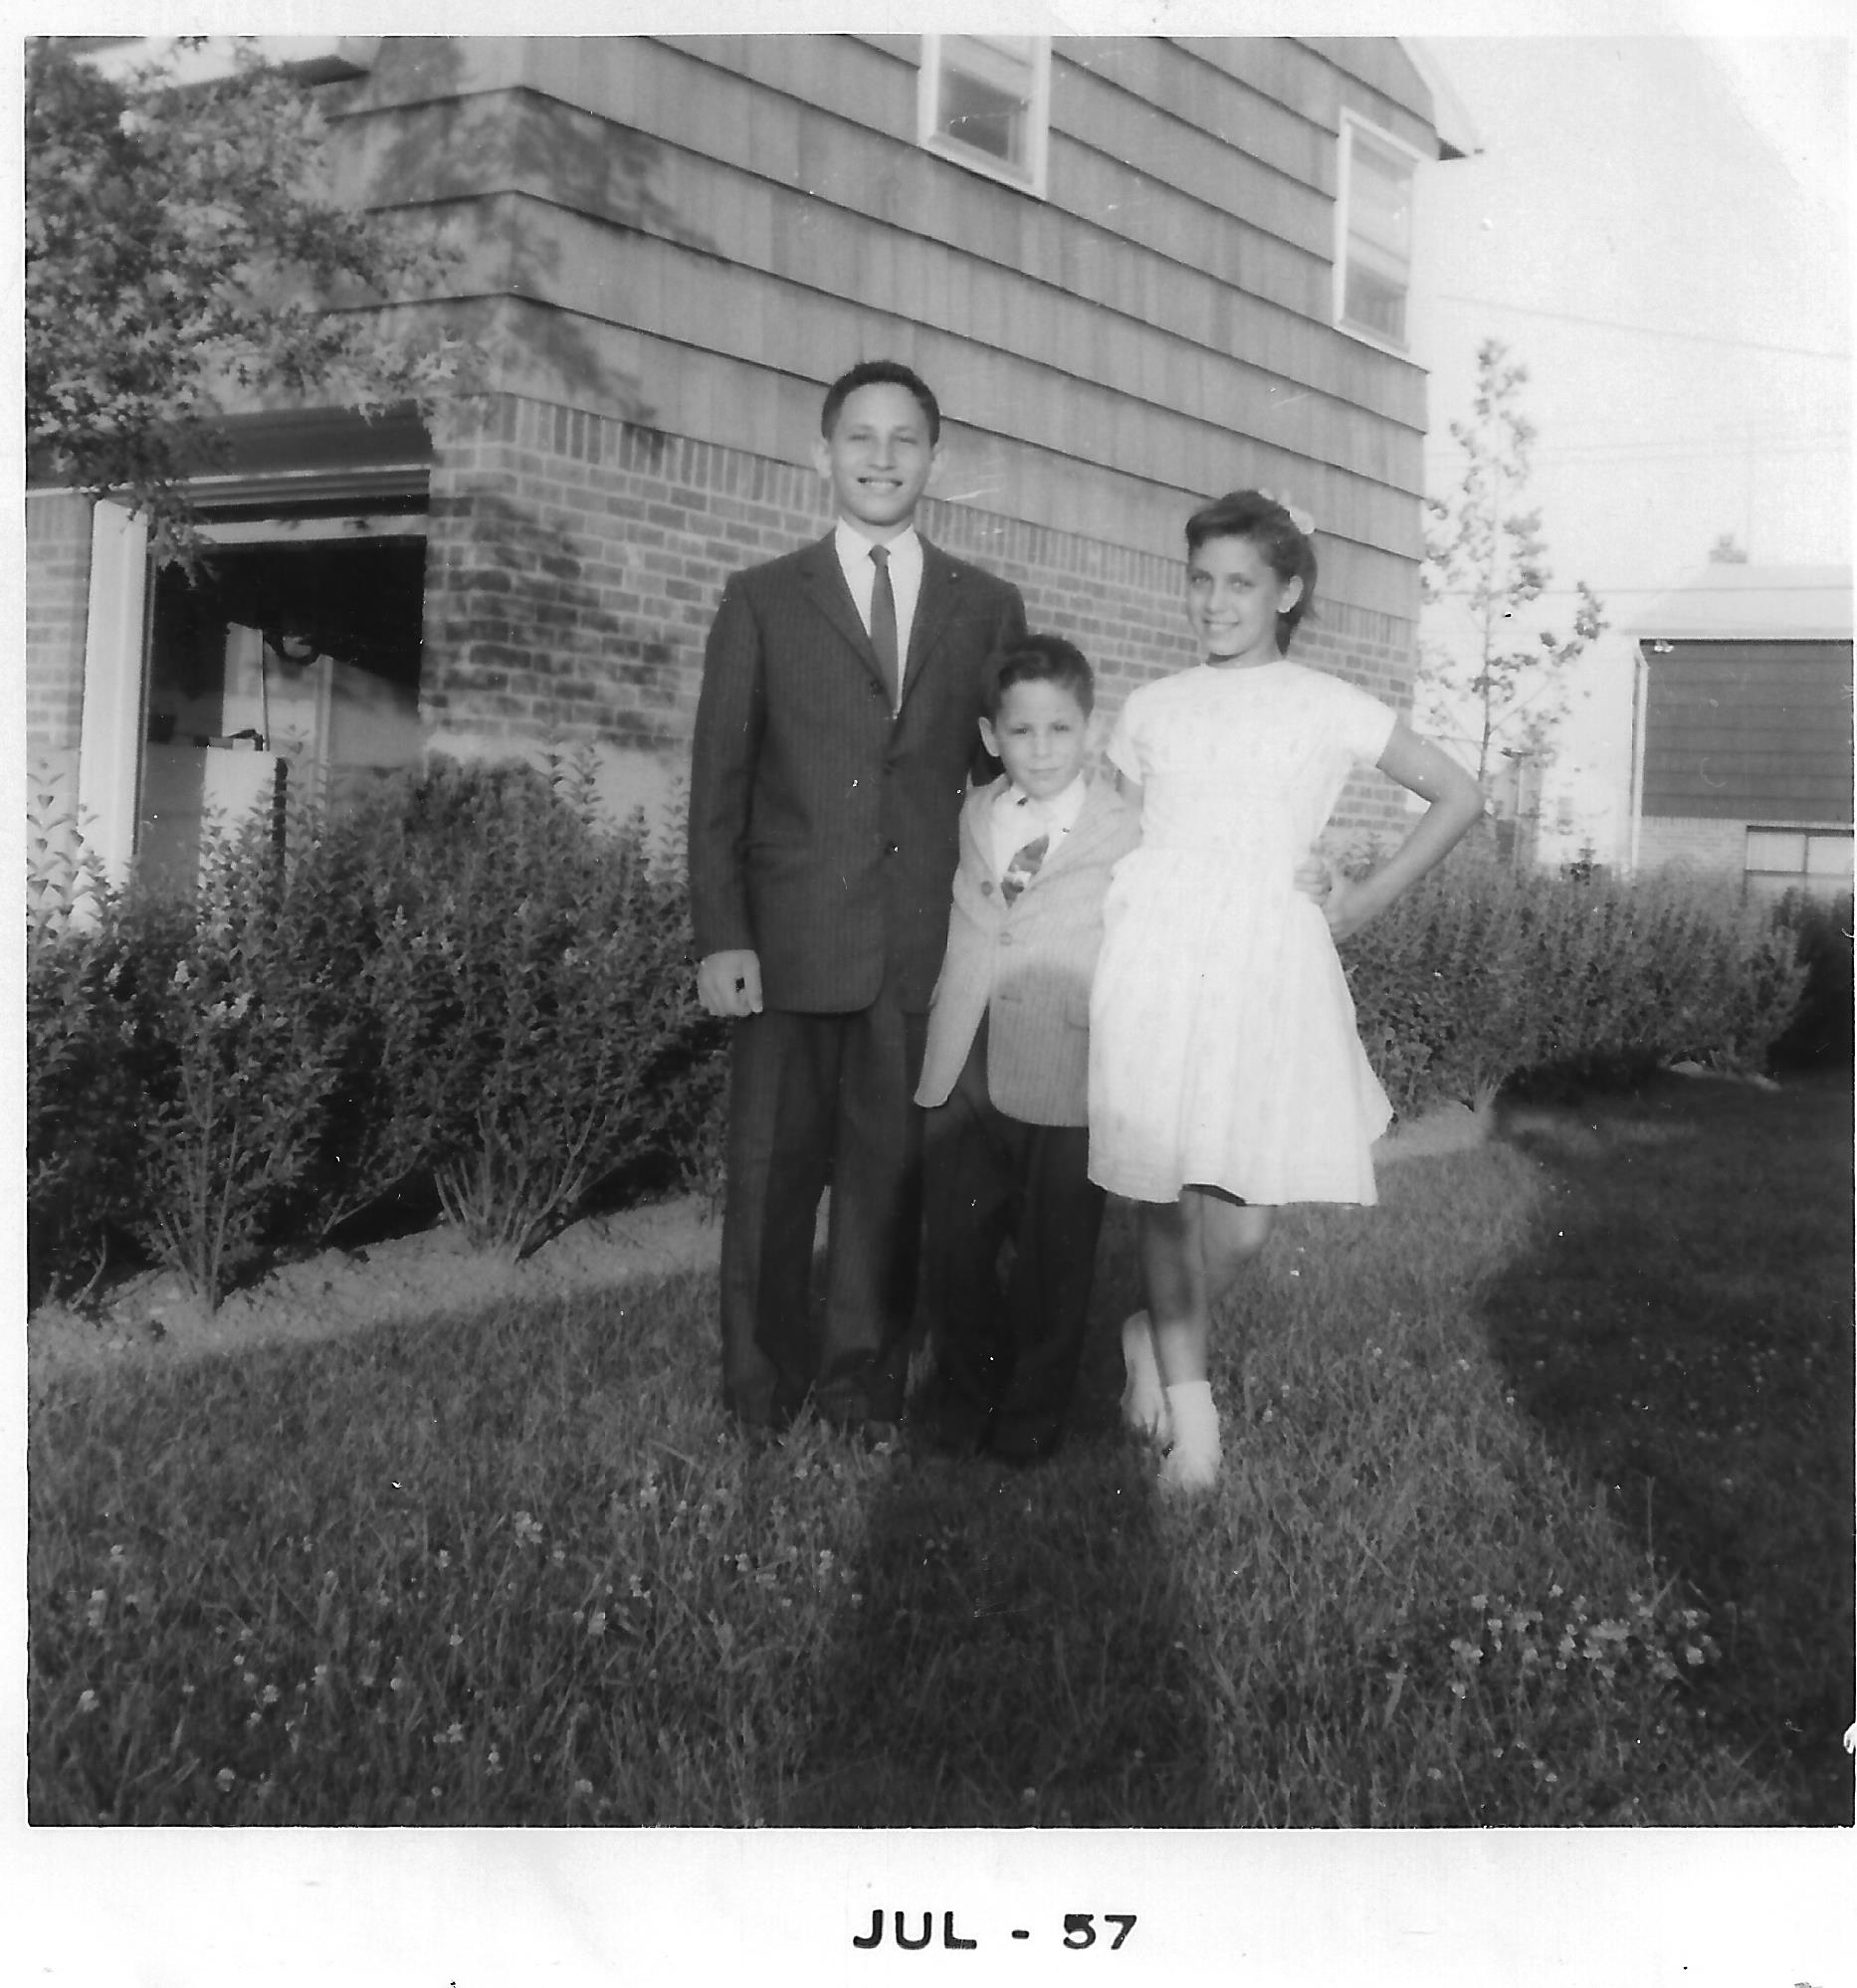 Left to right: David, Larry (Lev), Linda - dressed up for a party in July 1957